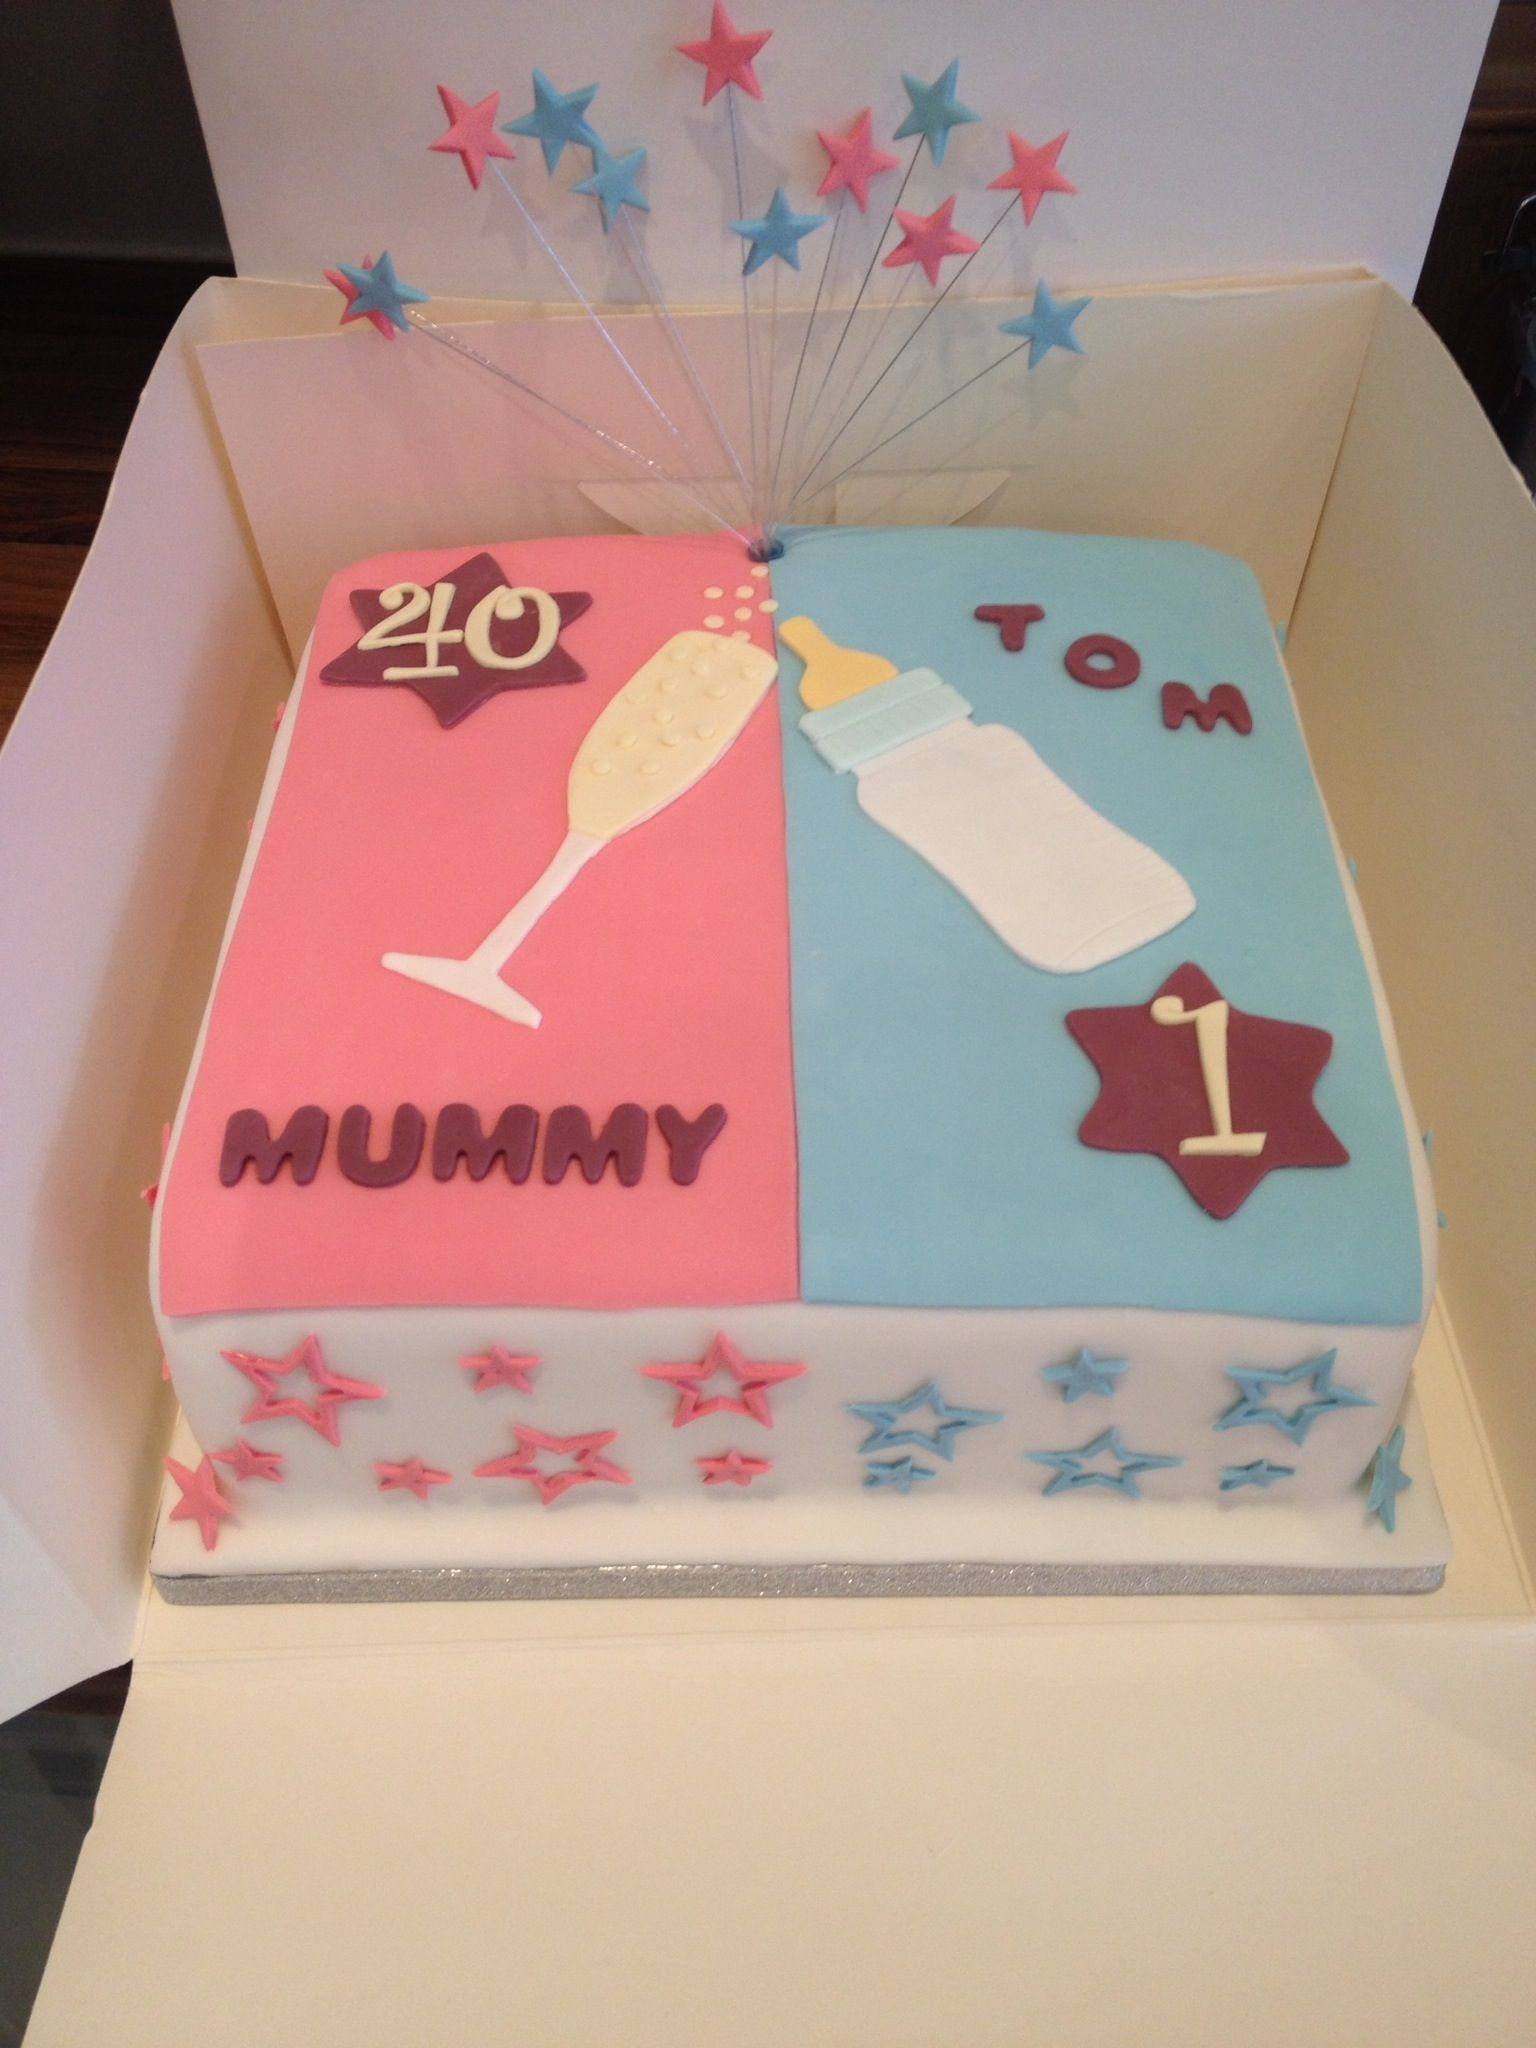 A Joint Birthday Cake For 40th And 1st